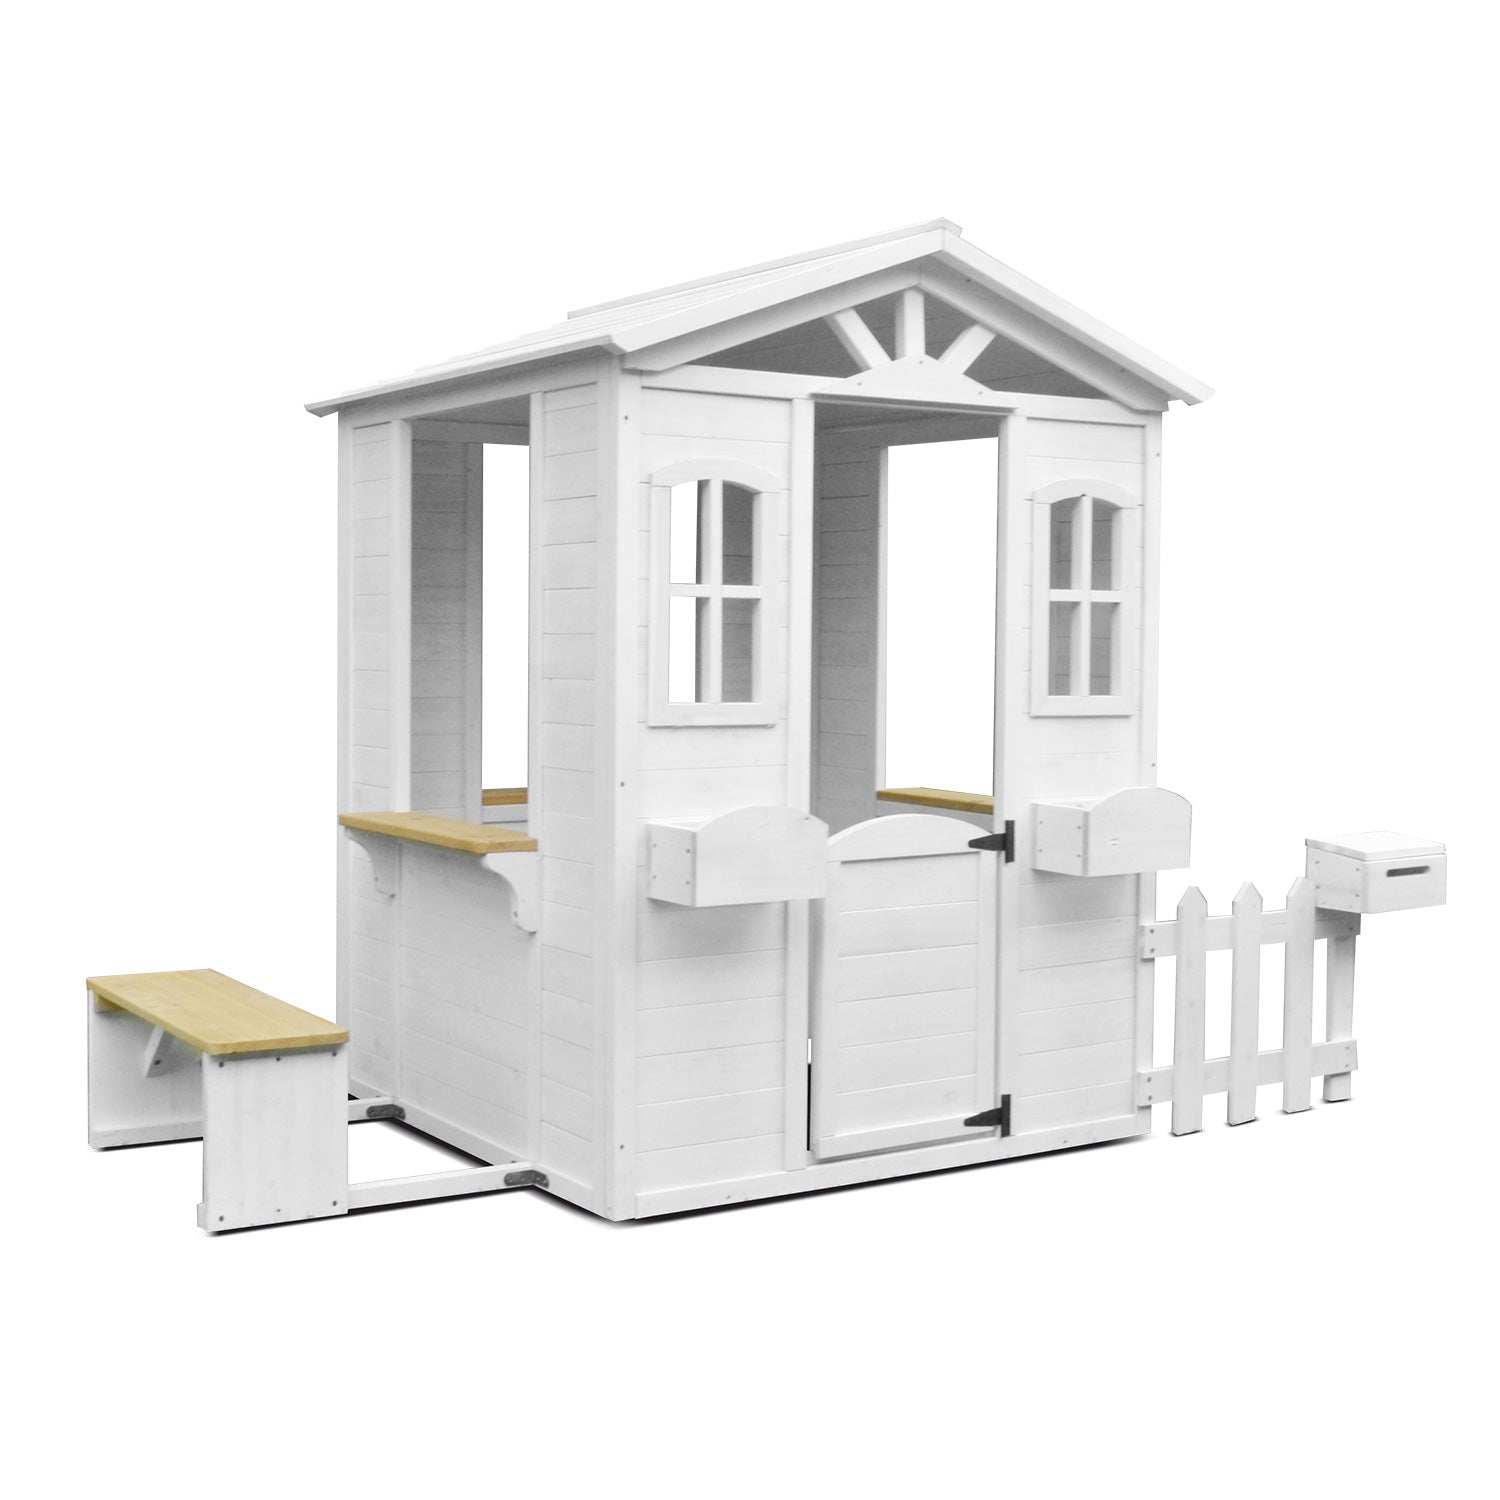 Lifespan Kids Teddy Cubby House with White Picket Fence and Floor